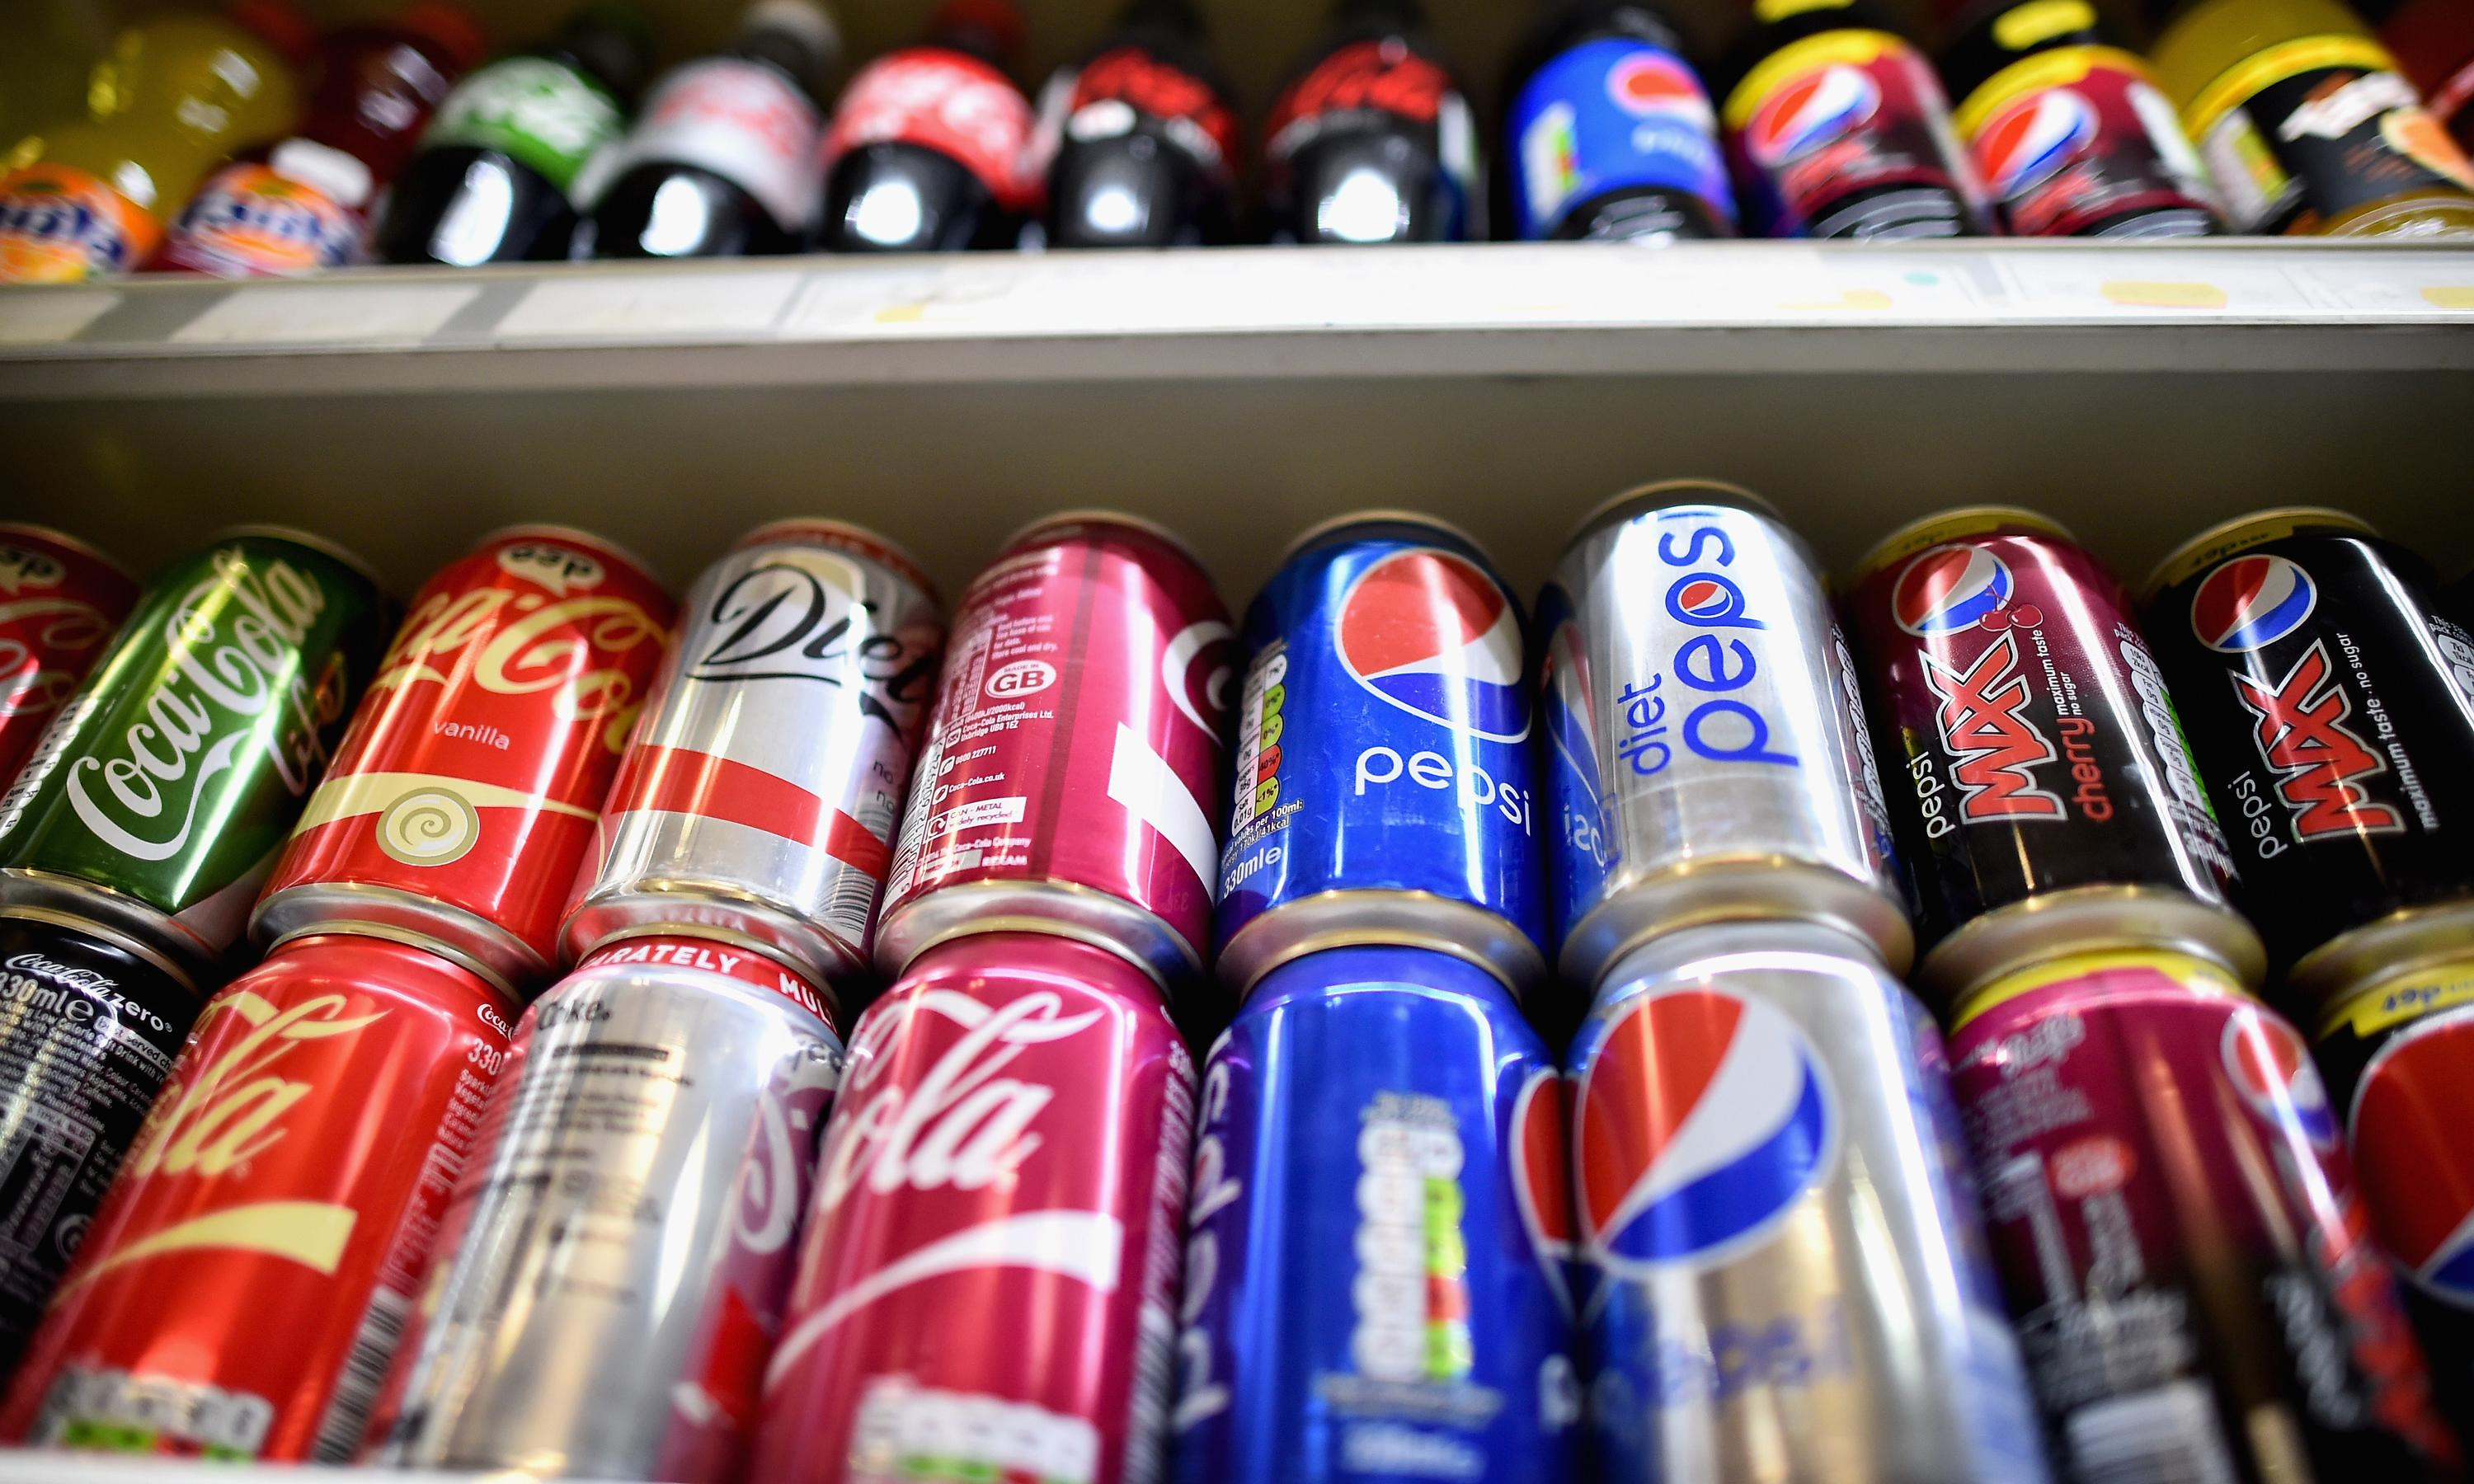 Soft drinks, including sugar-free, linked to increased risk of early death